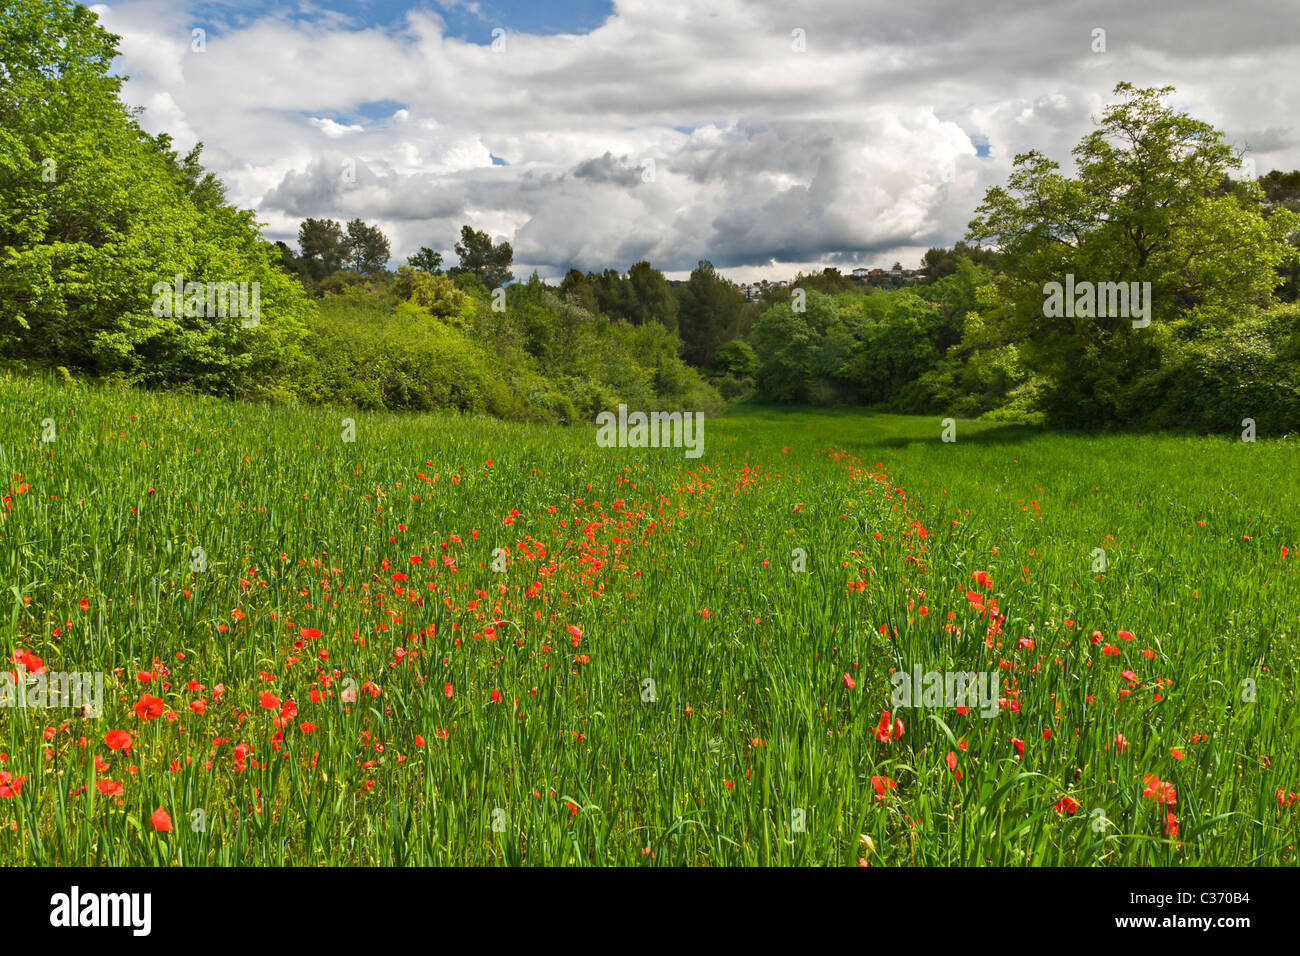 Red poppies in spring green field with cloudy sky - Stock Image